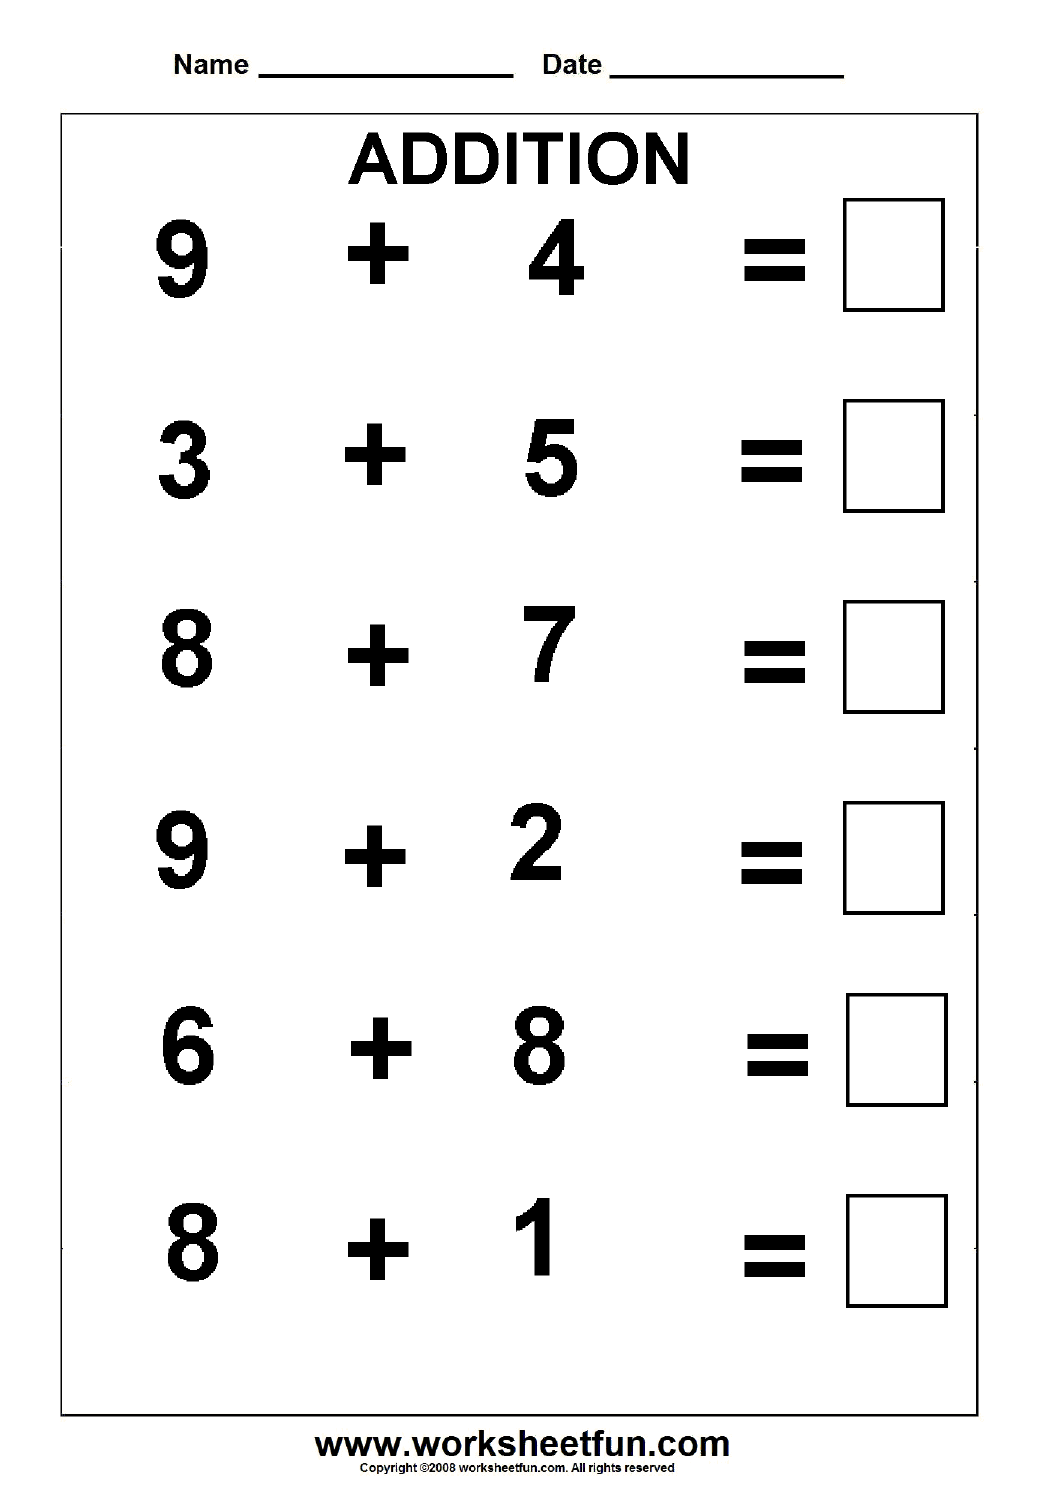 Beginner Addition 5 Kindergarten Addition Worksheets Free Printable Worksheets Worksheetfun